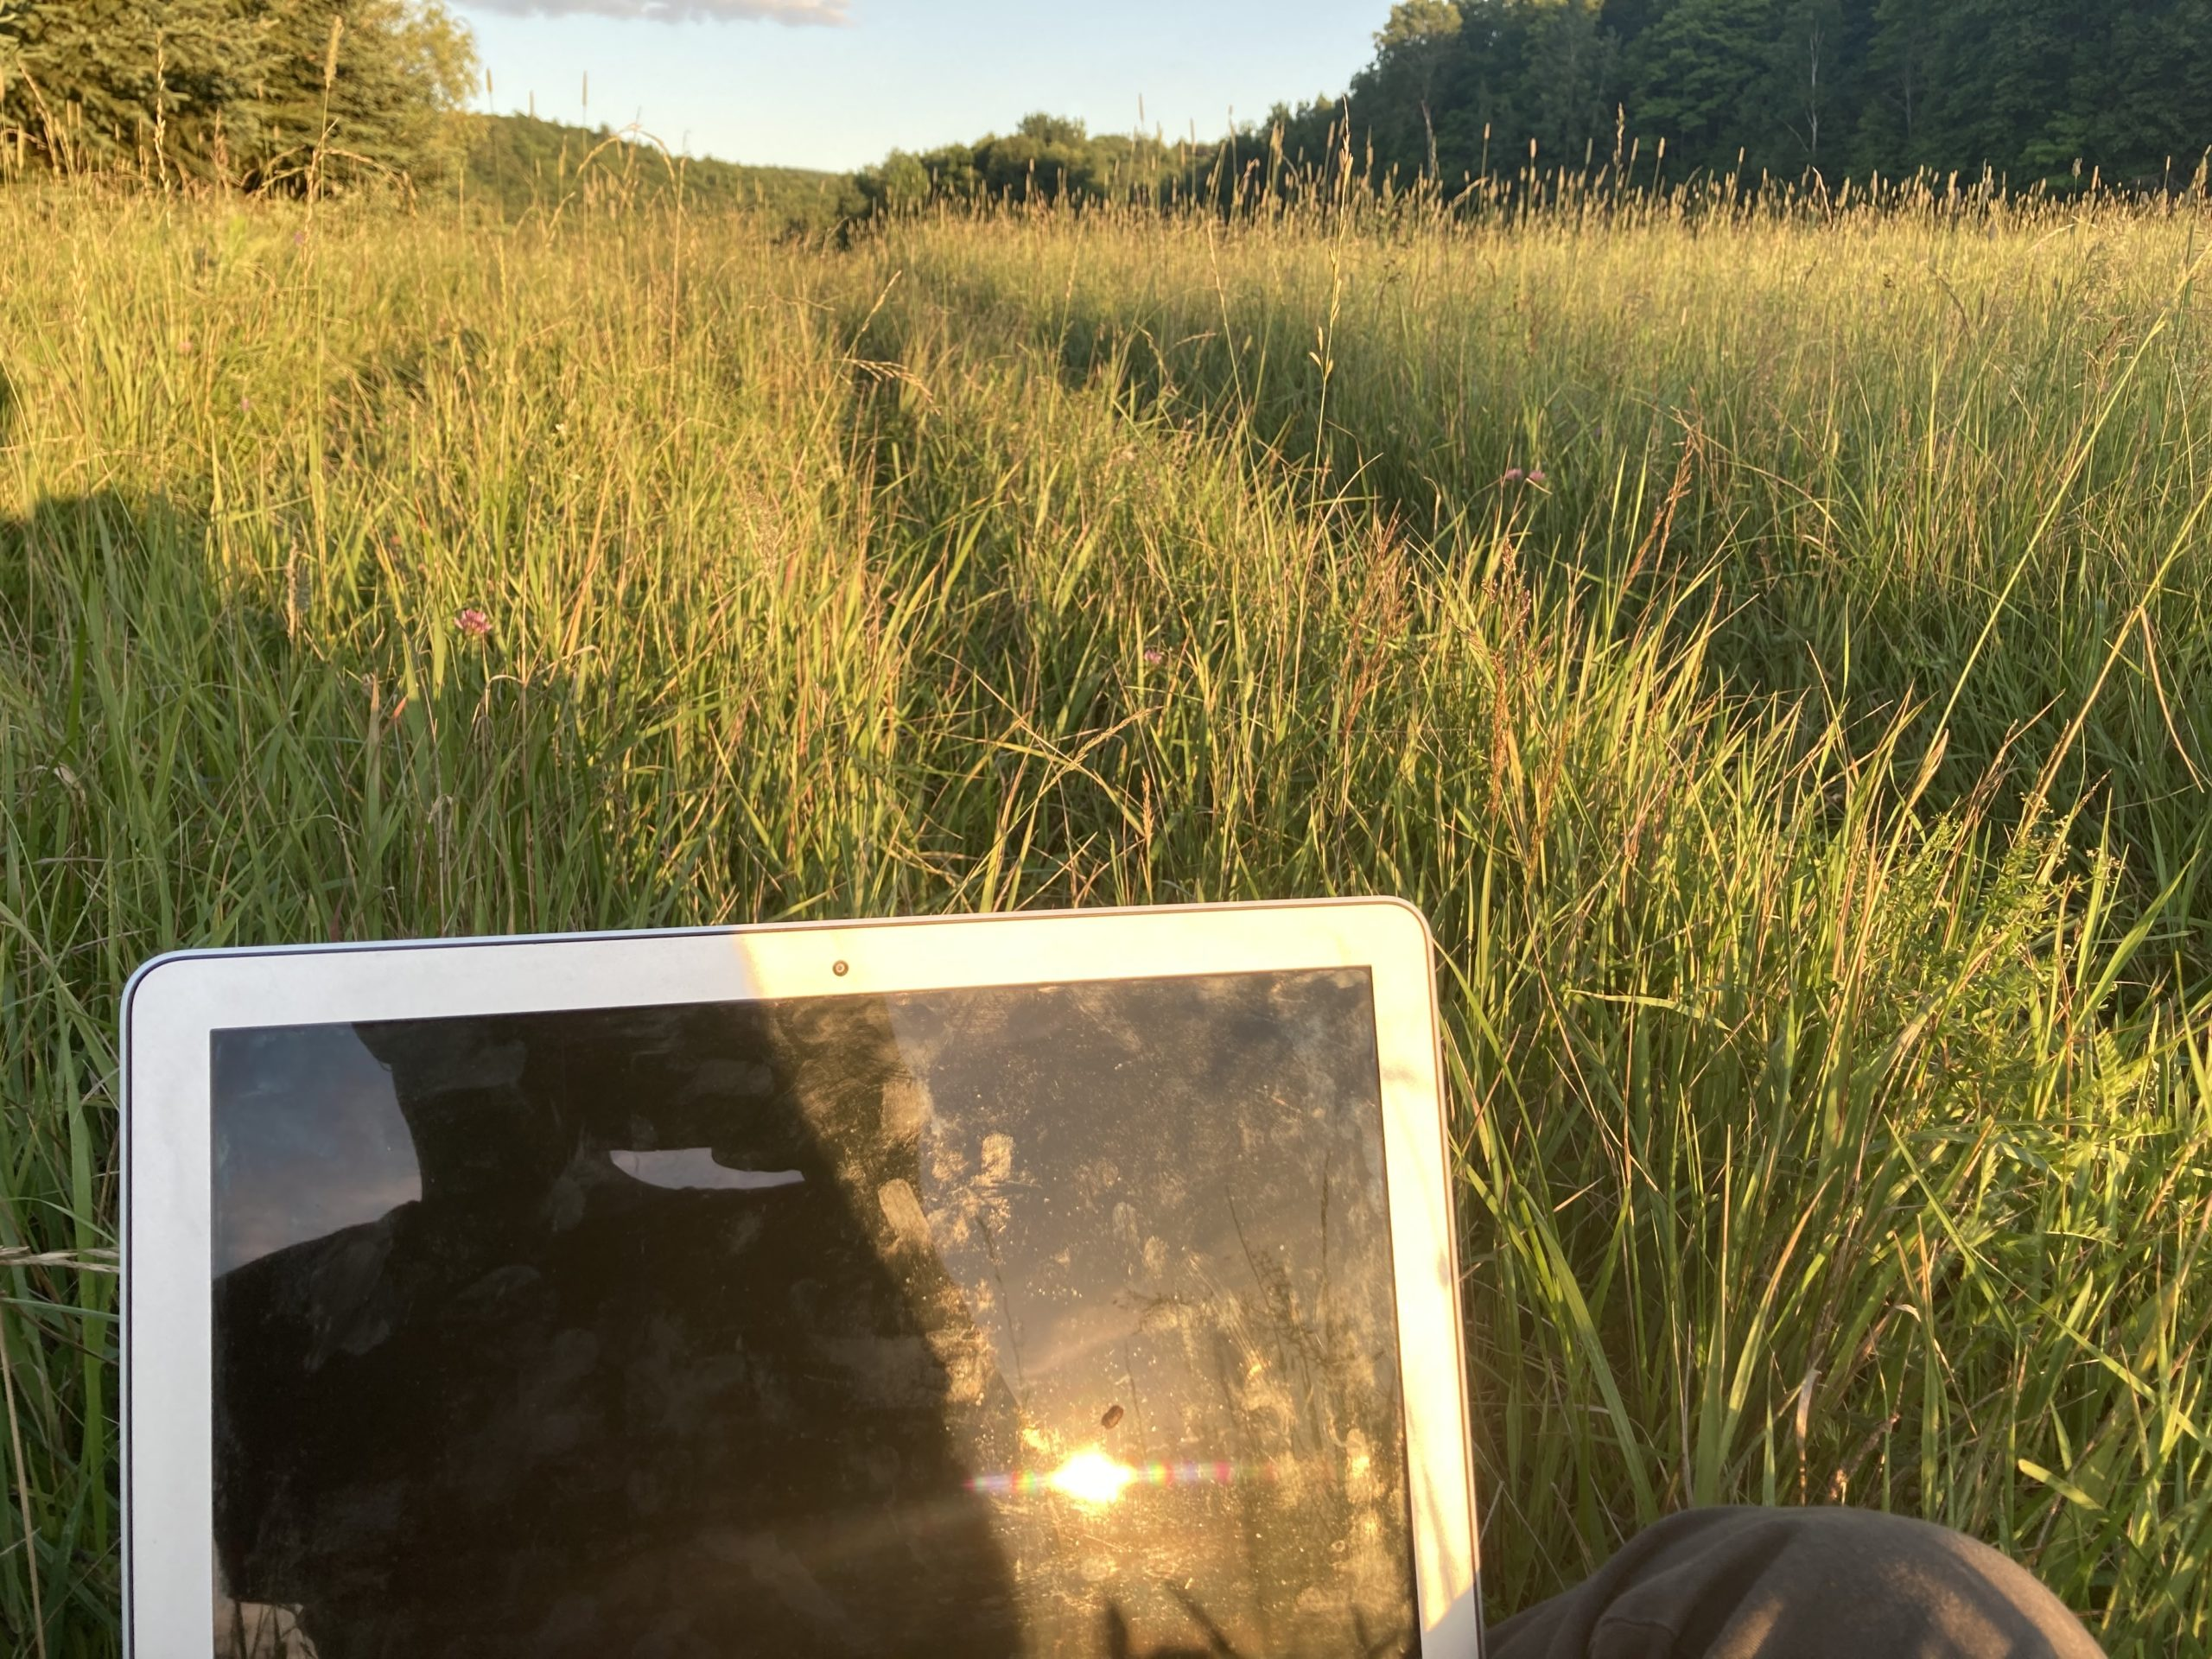 a field of tall grass at dusk with a blank laptop screen in the foreground